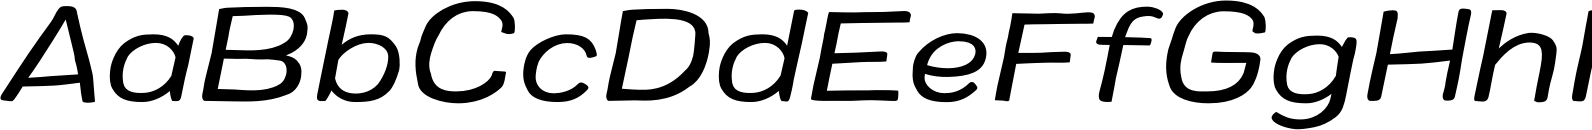 Colby Wide Regular Italic Font